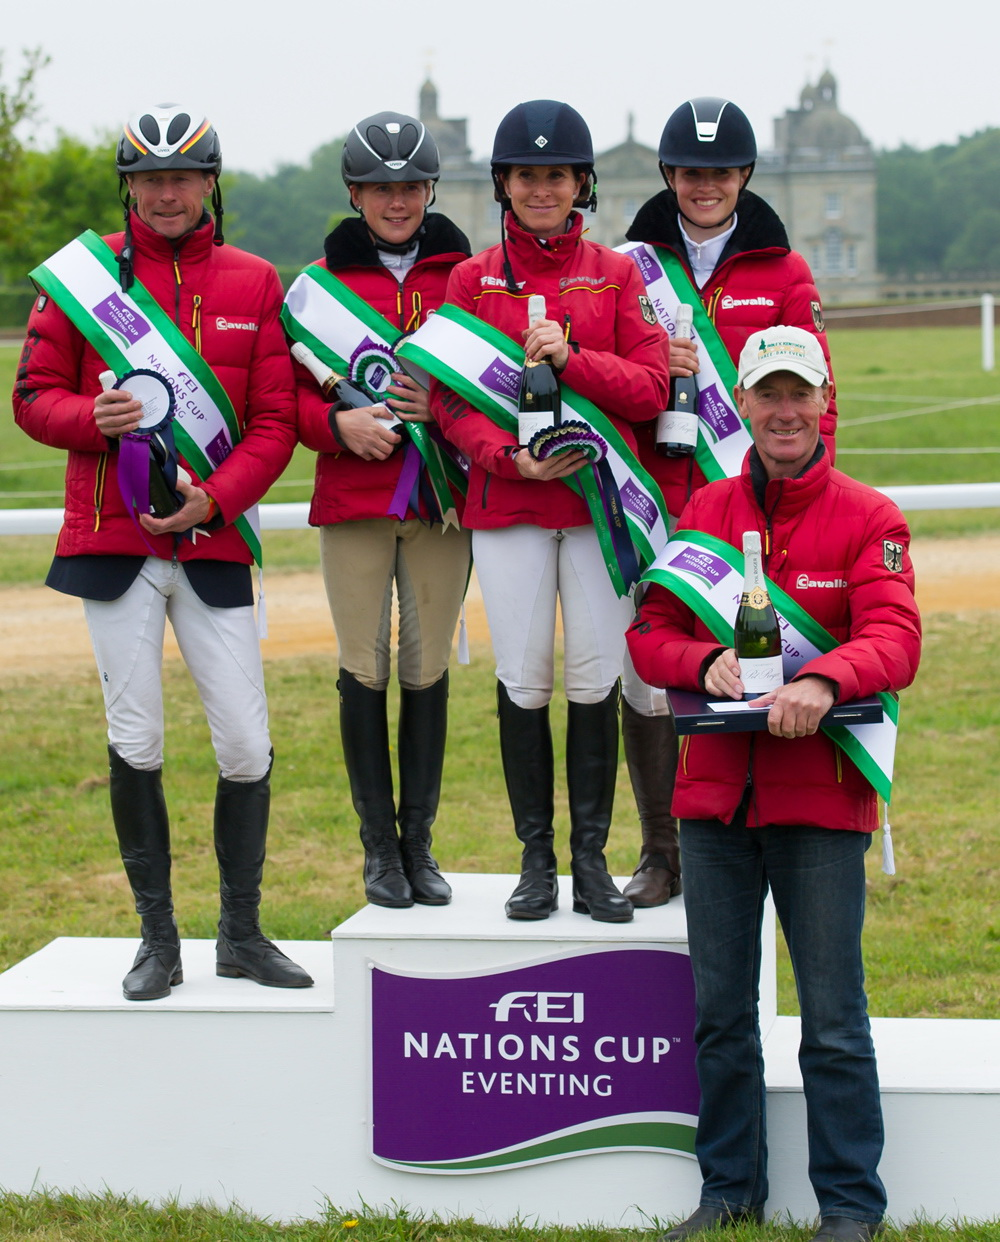 Germany, winners of the FEI Nations Cup™ Eventing at Houghton Hall (GBR) for the second year running (left to right): Peter Thomsen, Josefa Sommer, Bettina Hoy and Josephine Schnauffer, with their coach Christopher Bartle (Trevor Holt/FEI)